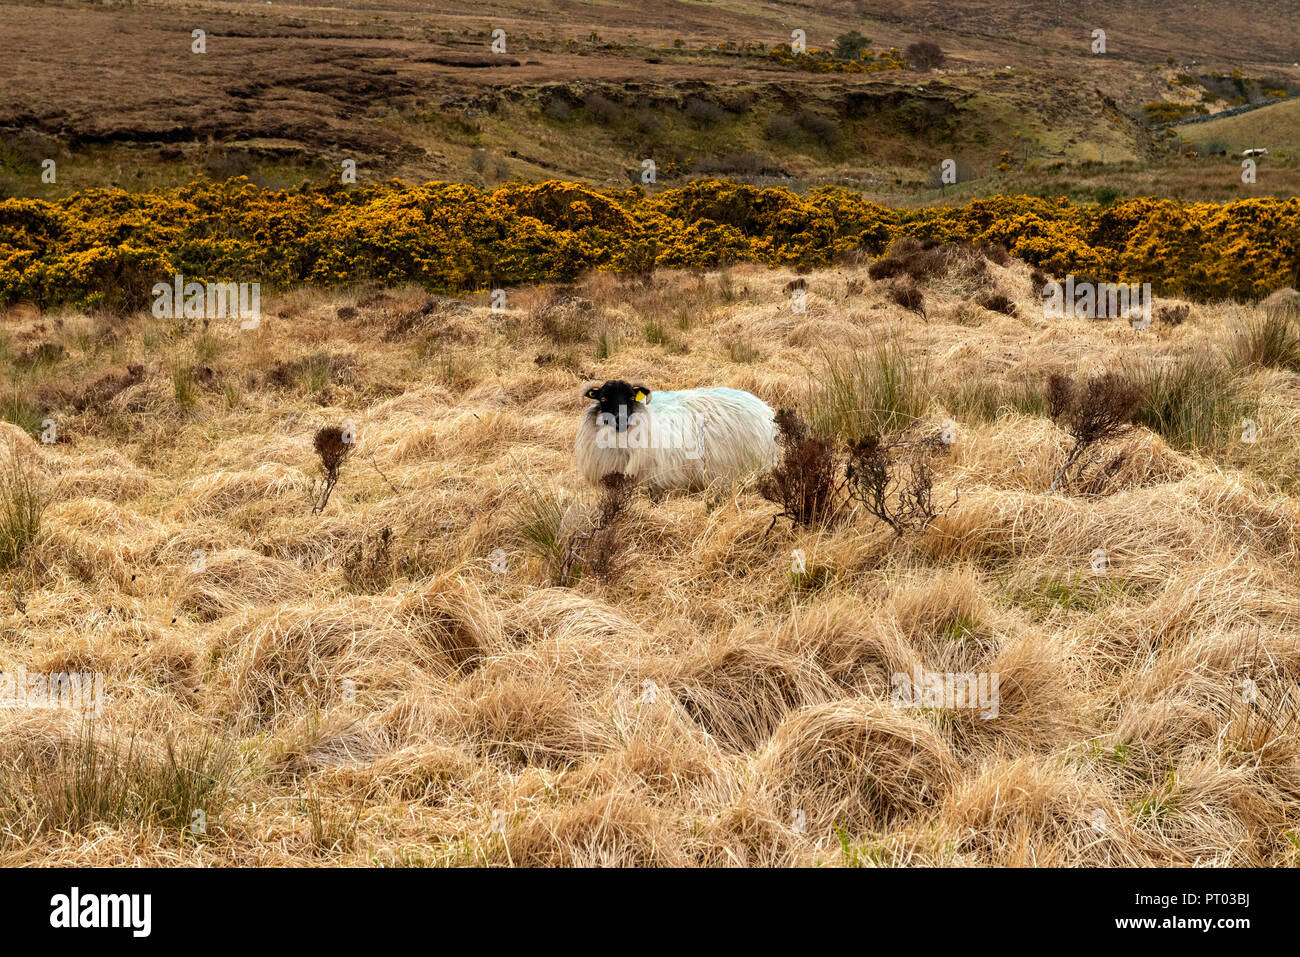 Europe, Ireland, Galway, Sheep grazing on the Irish peatland, or blanket bog as it is often called. - Stock Image